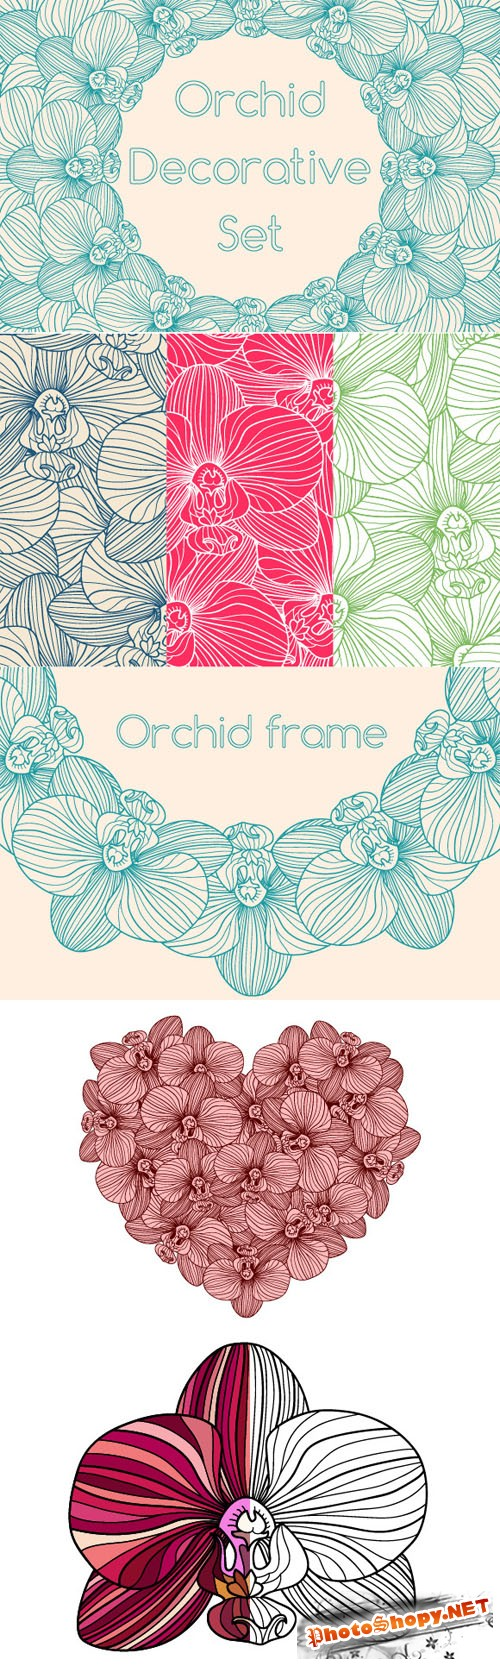 Decorative Orchid Set - Creativemarket 224931